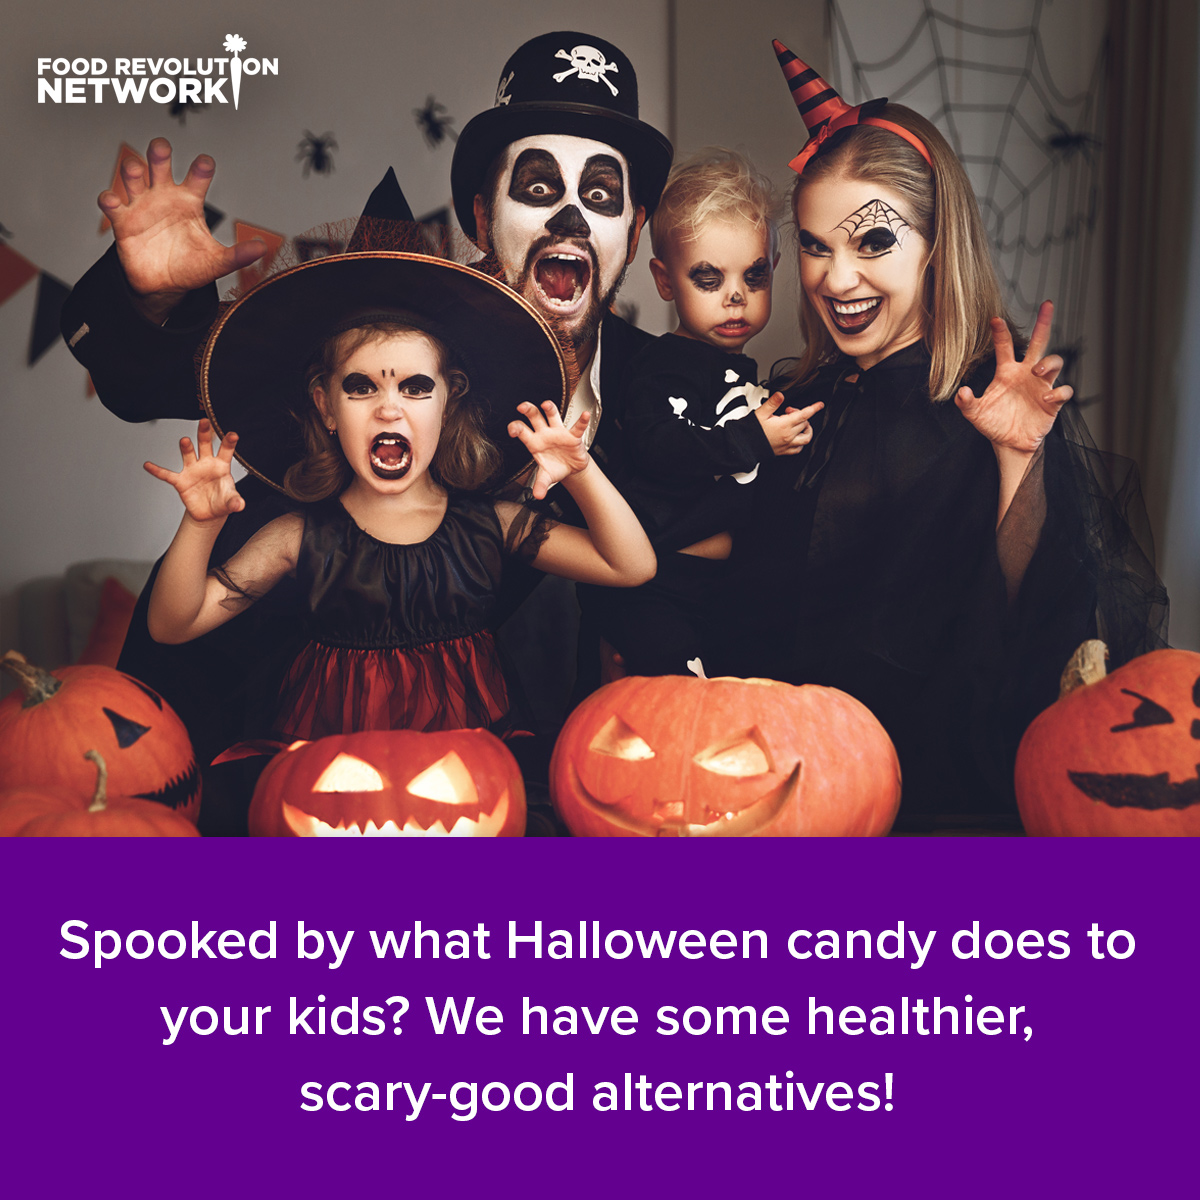 Spooked by what Halloween candy does to your kids? We have some healthier, scary-good alternatives!